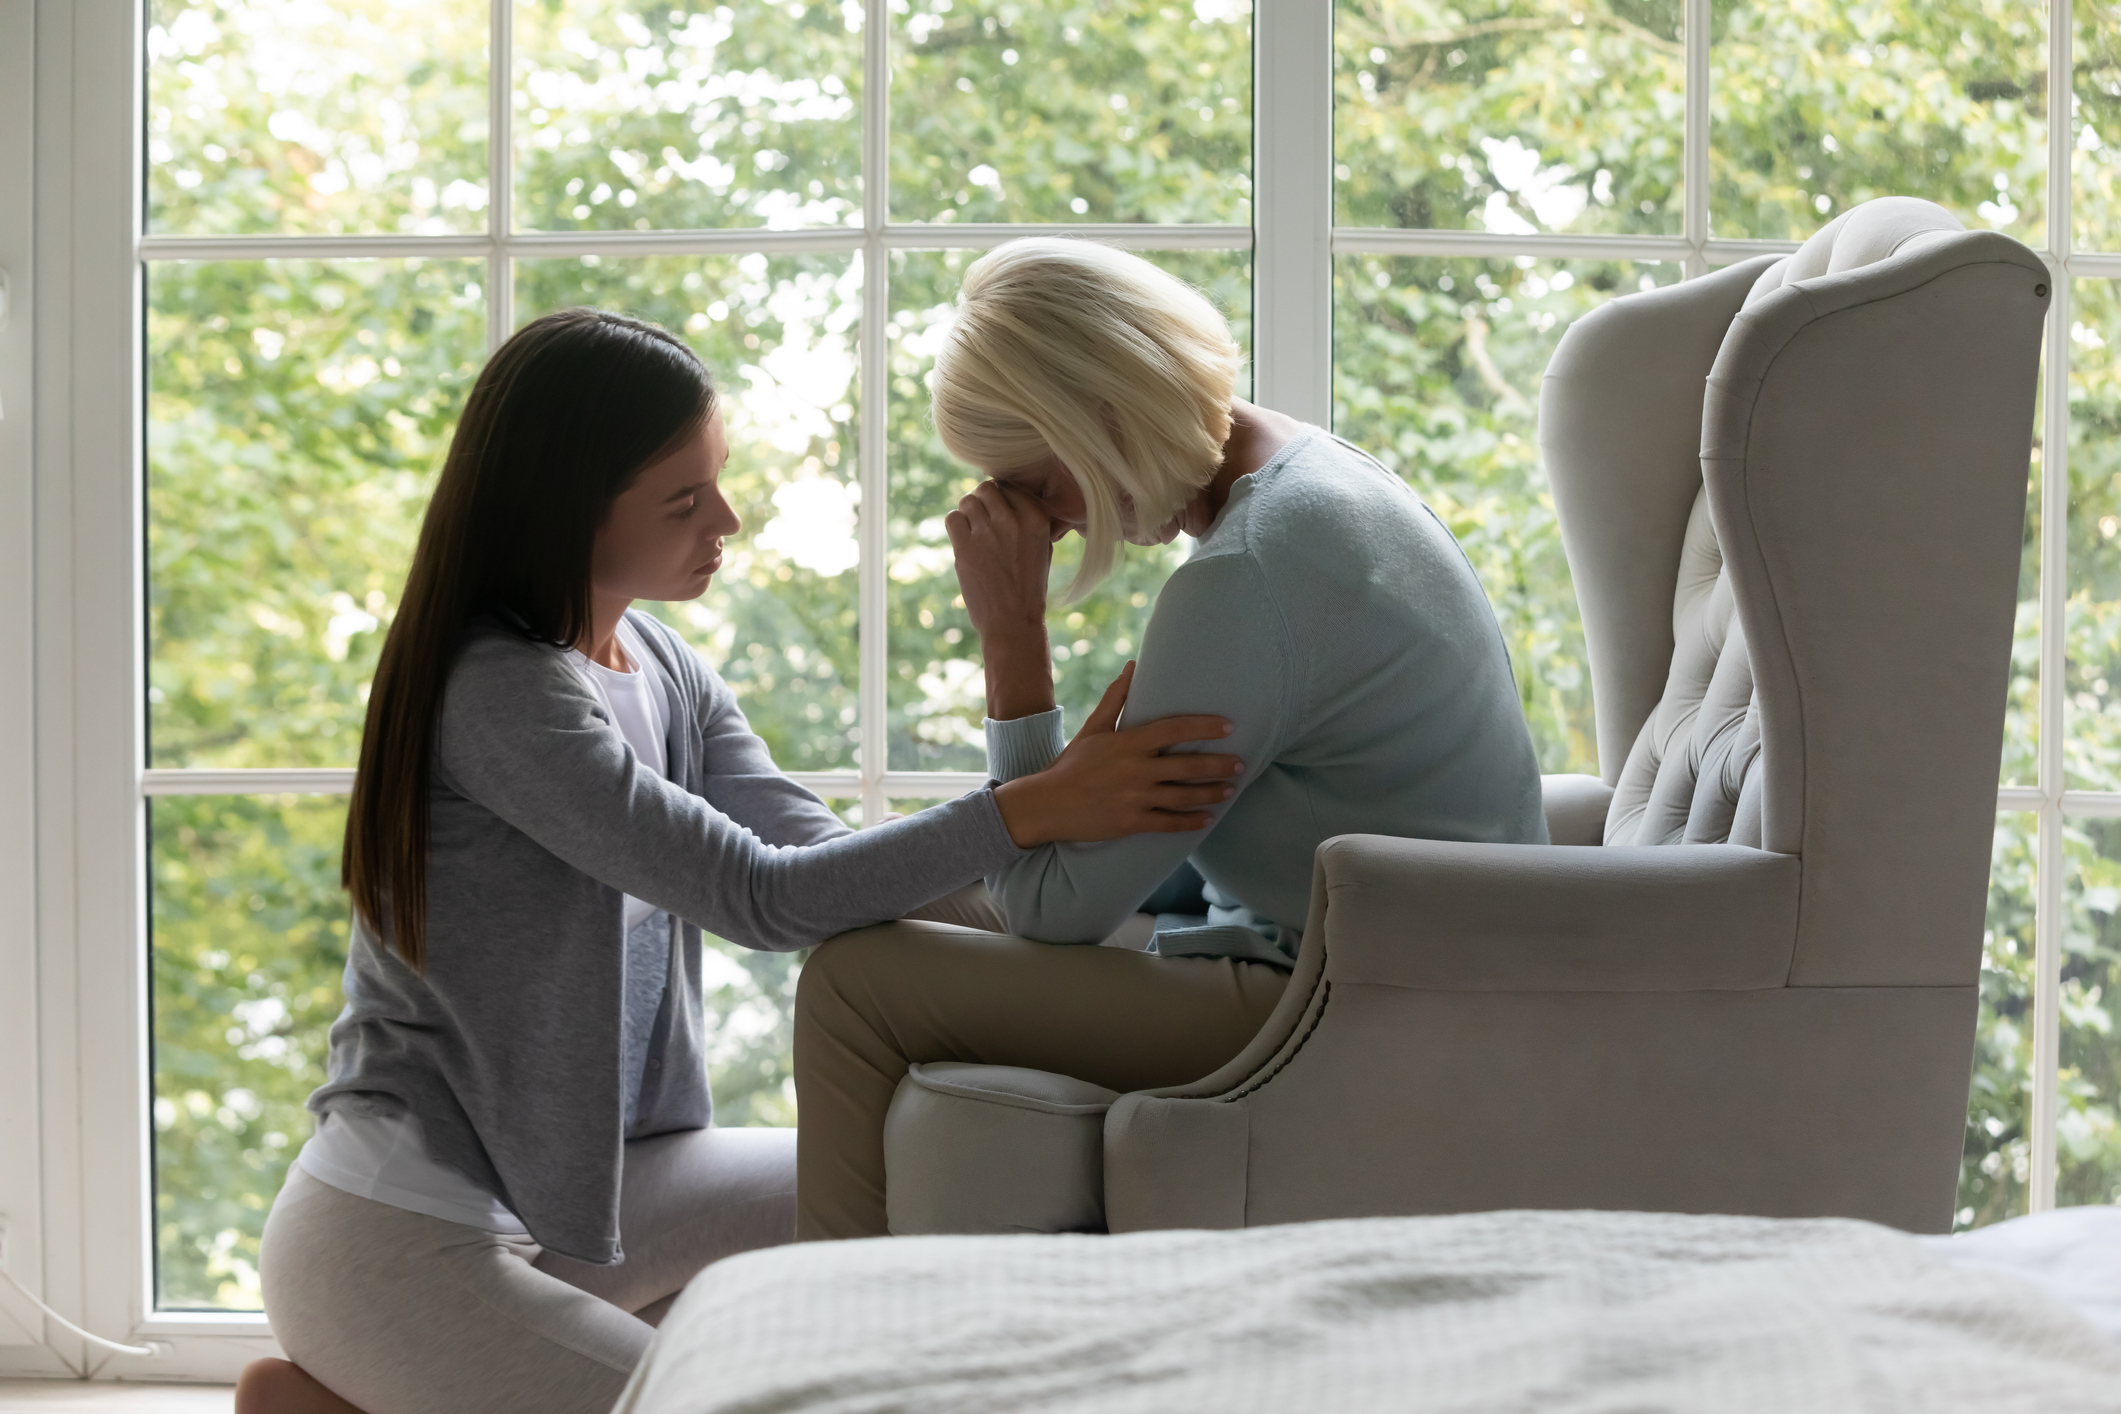 Daughter providing grief support to elderly mom